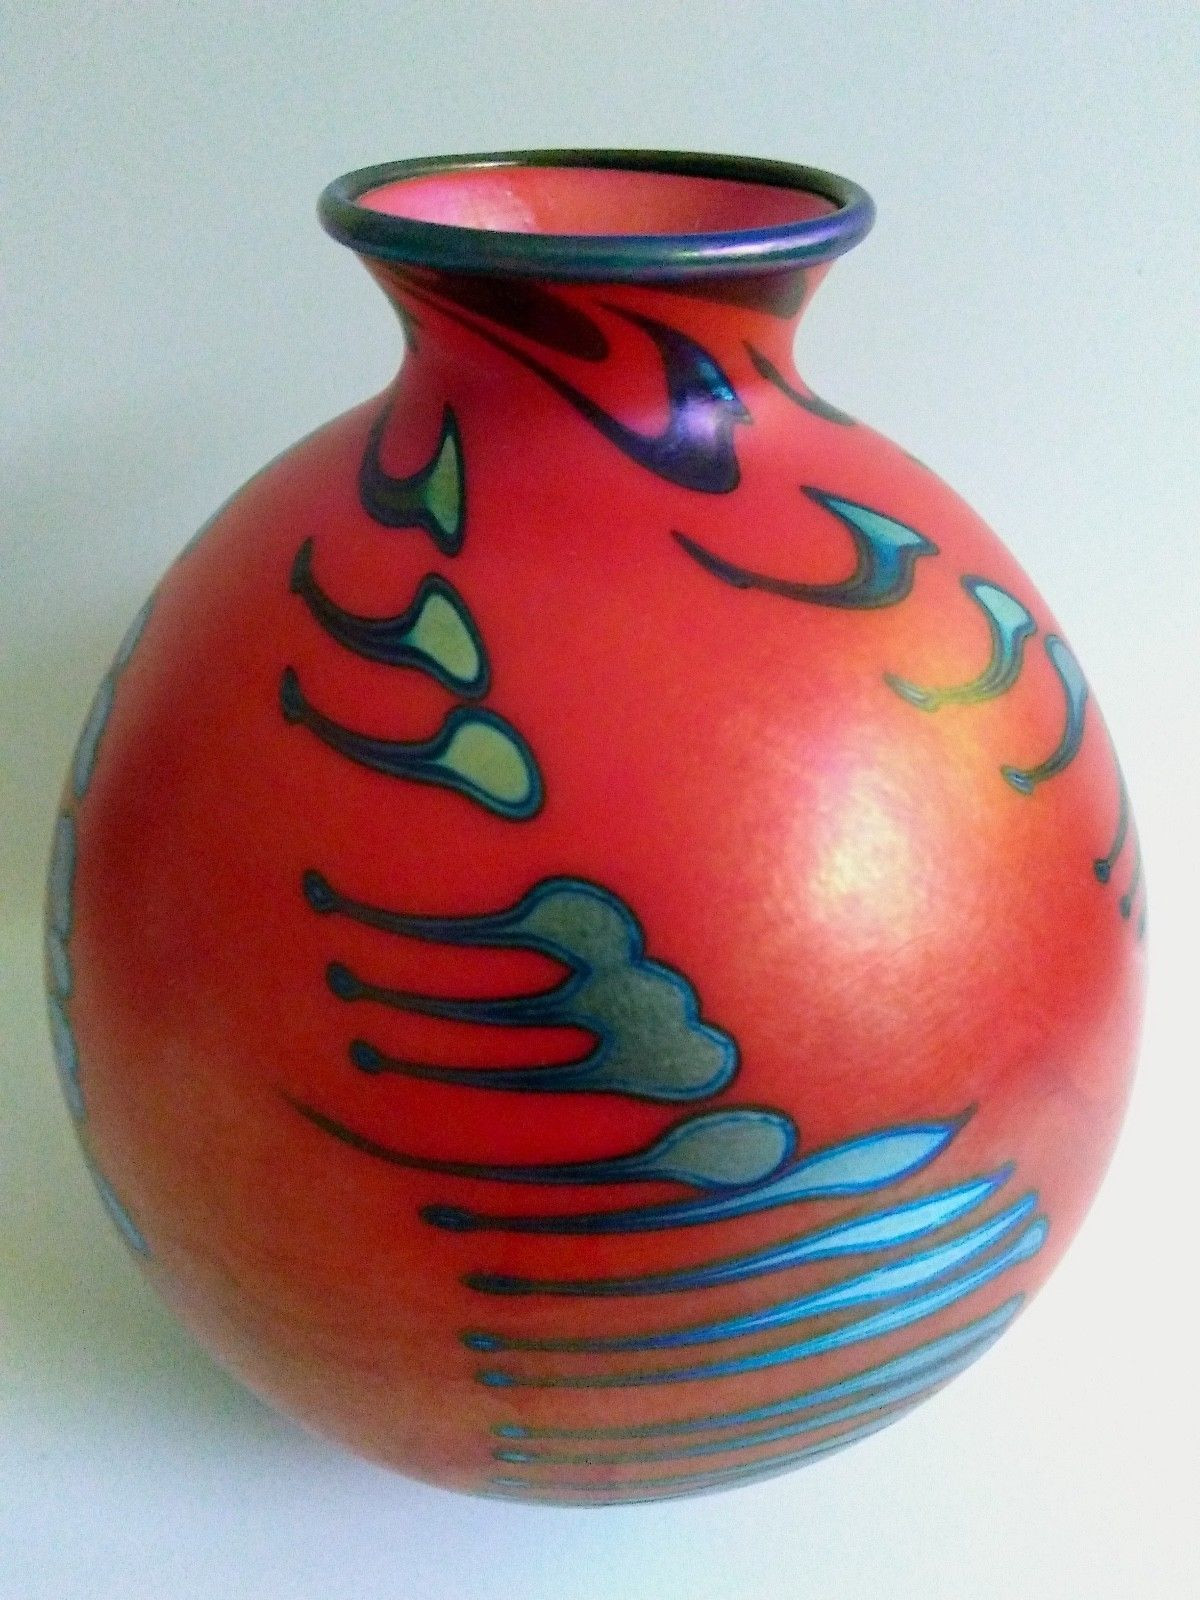 chinese vases for sale uk of 26 lenox small vase the weekly world within signed vintage charles lotton art glass vase mandarin red cobalt